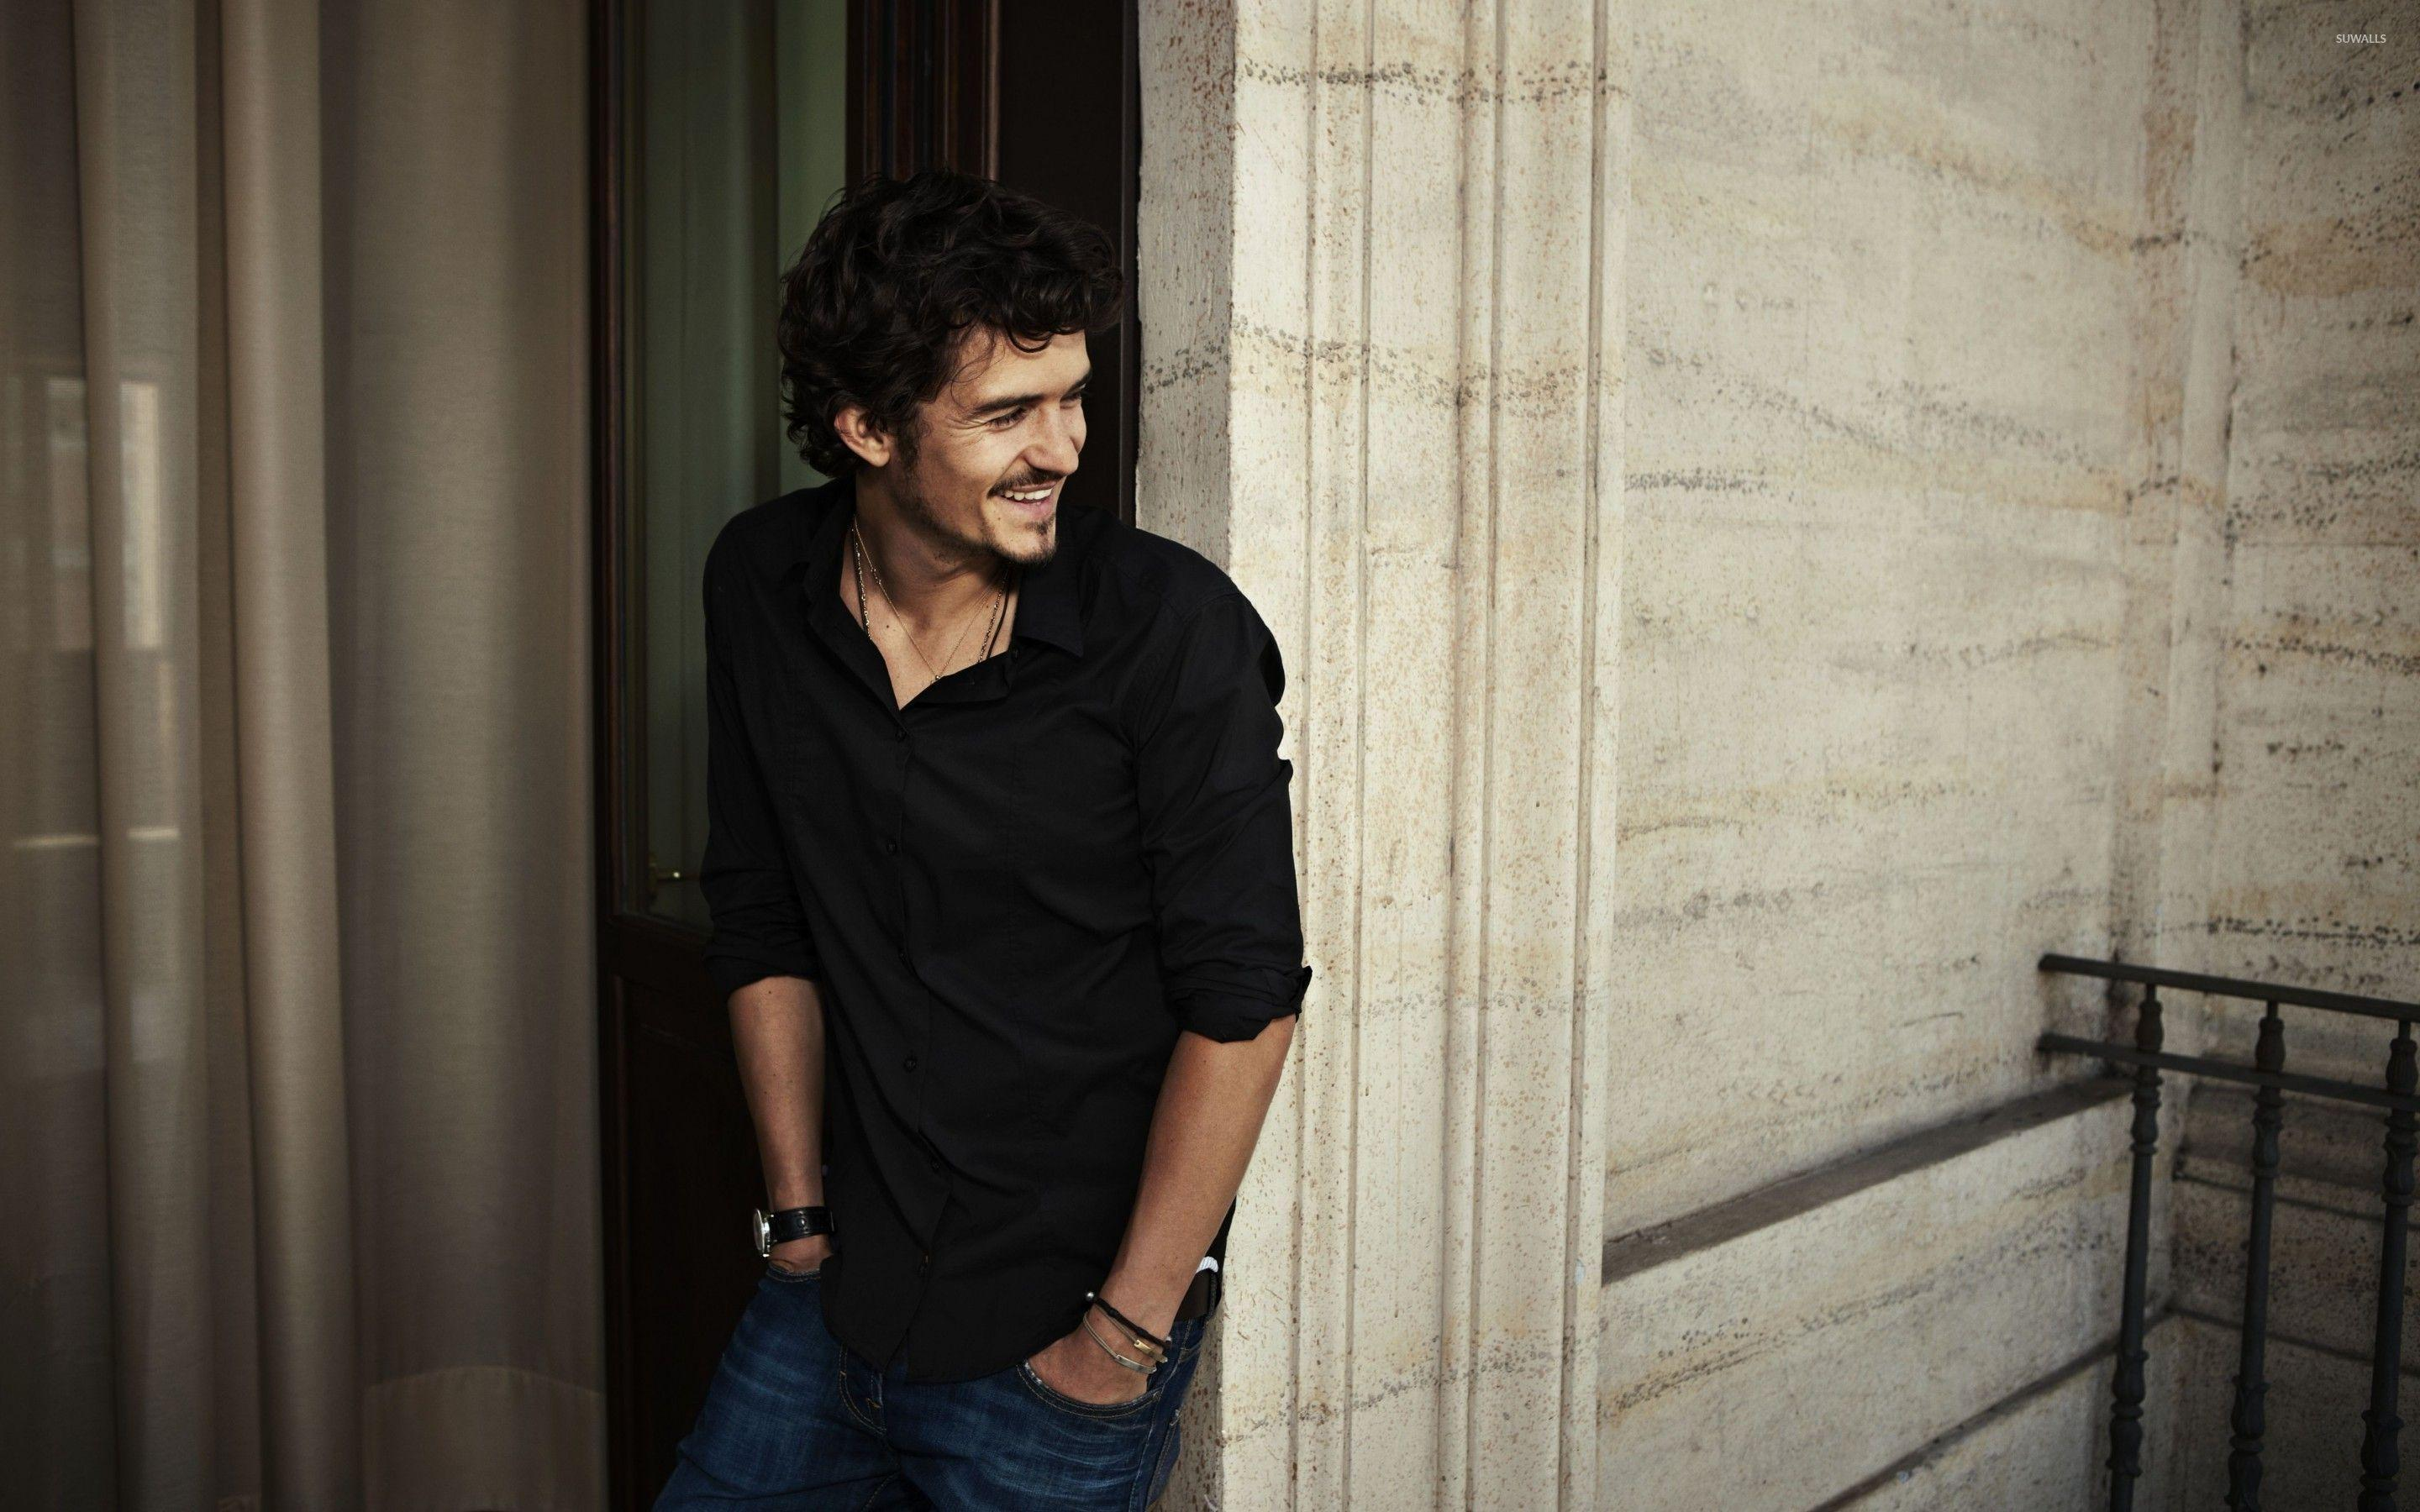 Orlando Bloom wallpaper - Male celebrity wallpapers - #2786